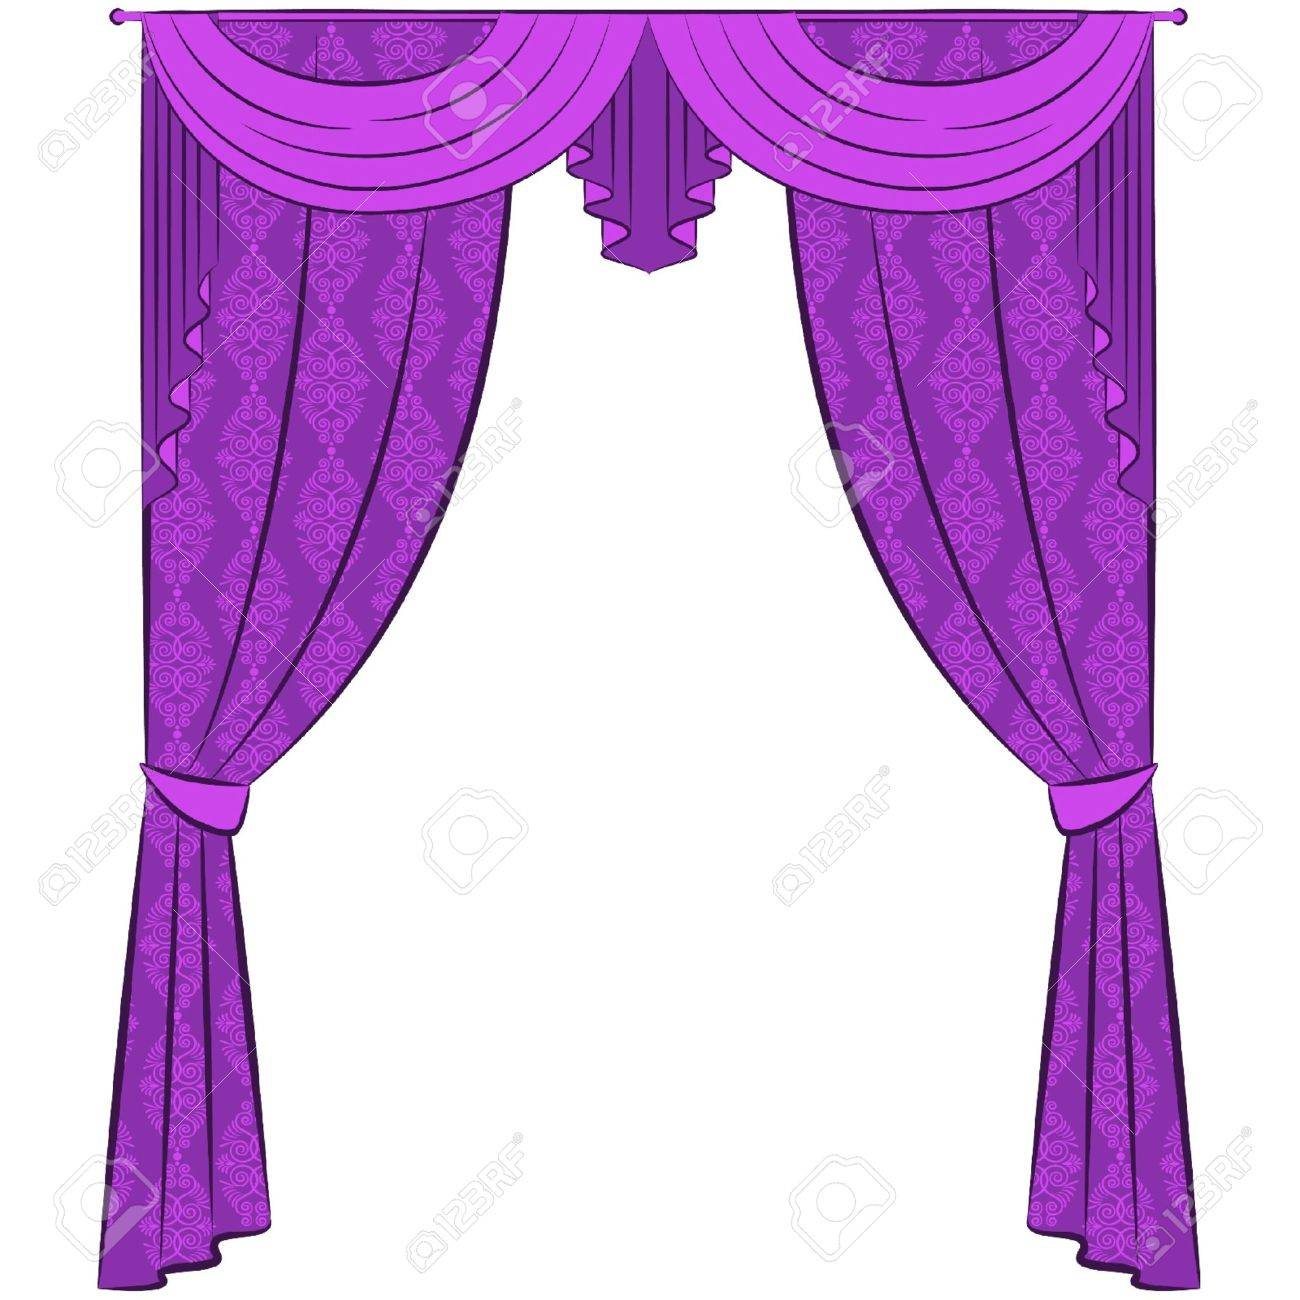 The vintage interior with curtain. Stock Vector - 10729665